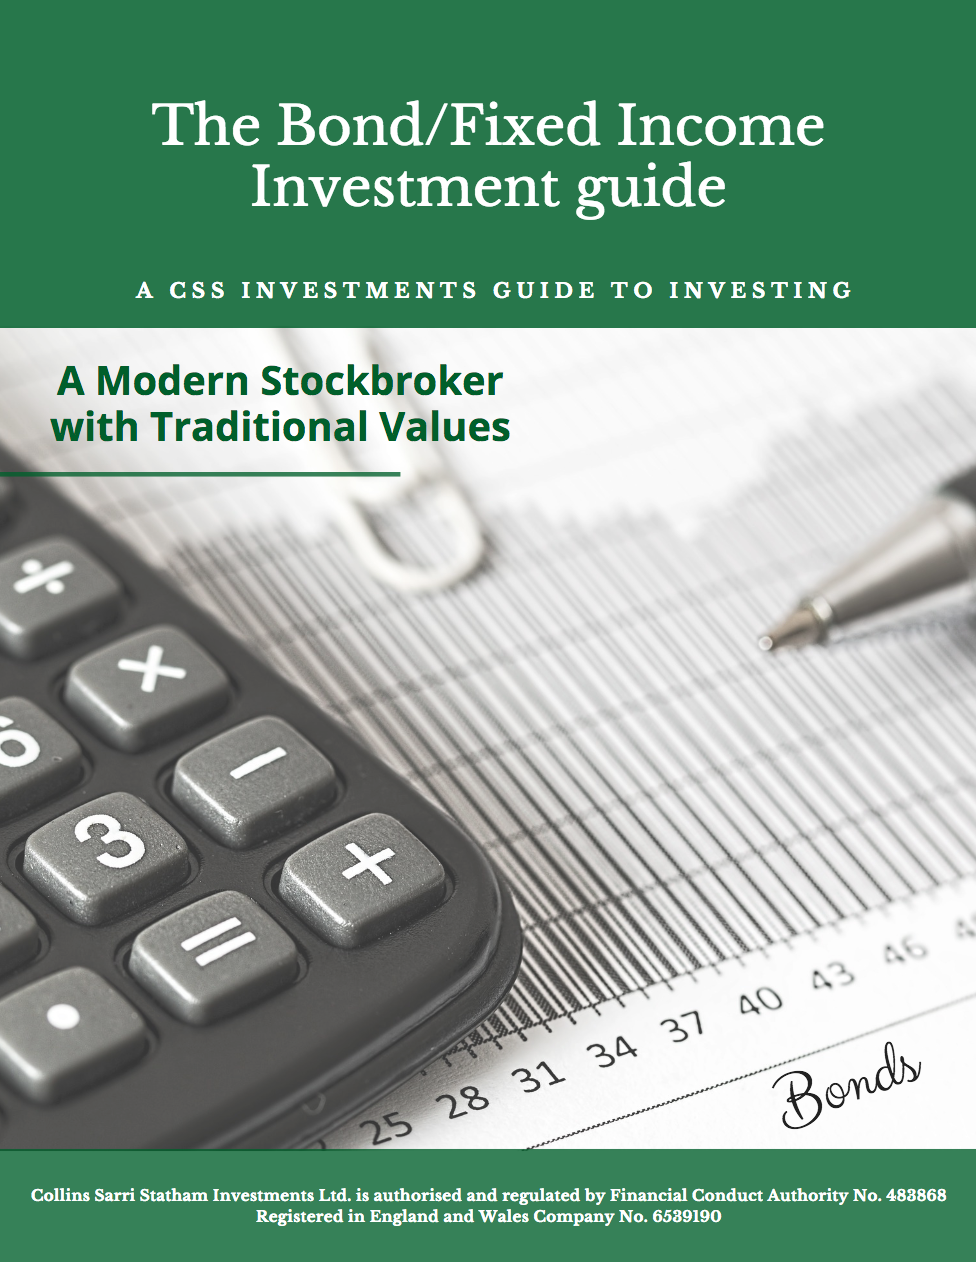 The Bond / Fixed Income investment guide